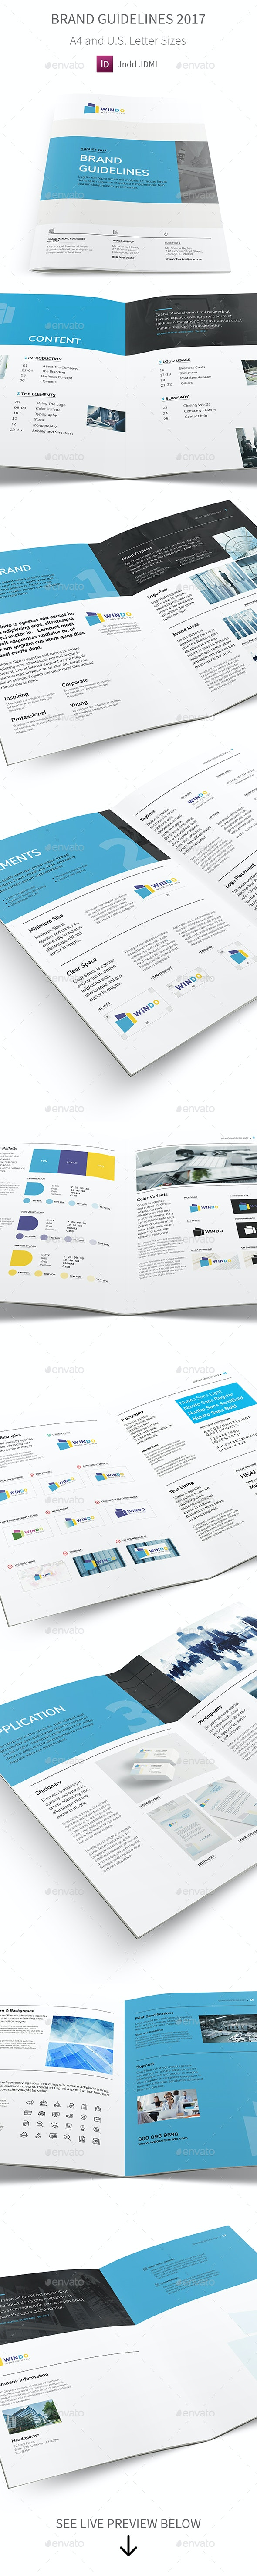 Brand Identity Guidelines 2017 - Informational Brochures